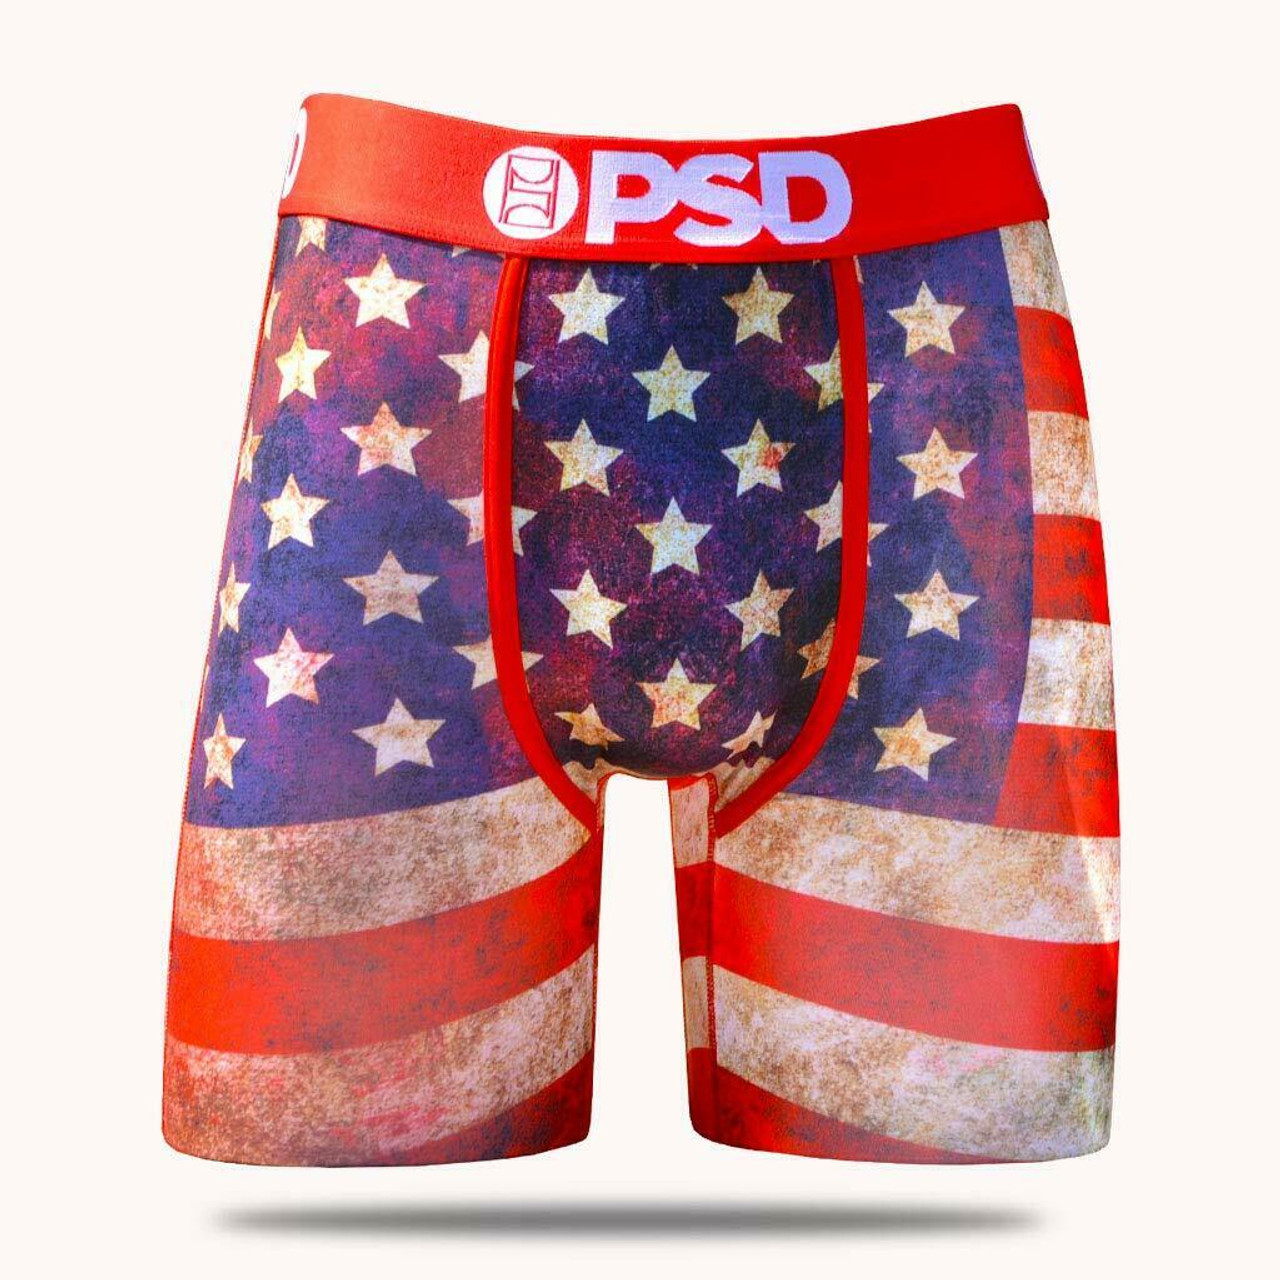 0a3bbbf9bbd PSD America 19 USA Flag 4th of July Patriotic Boxer Briefs Underwear  E11911060 - Fearless Apparel